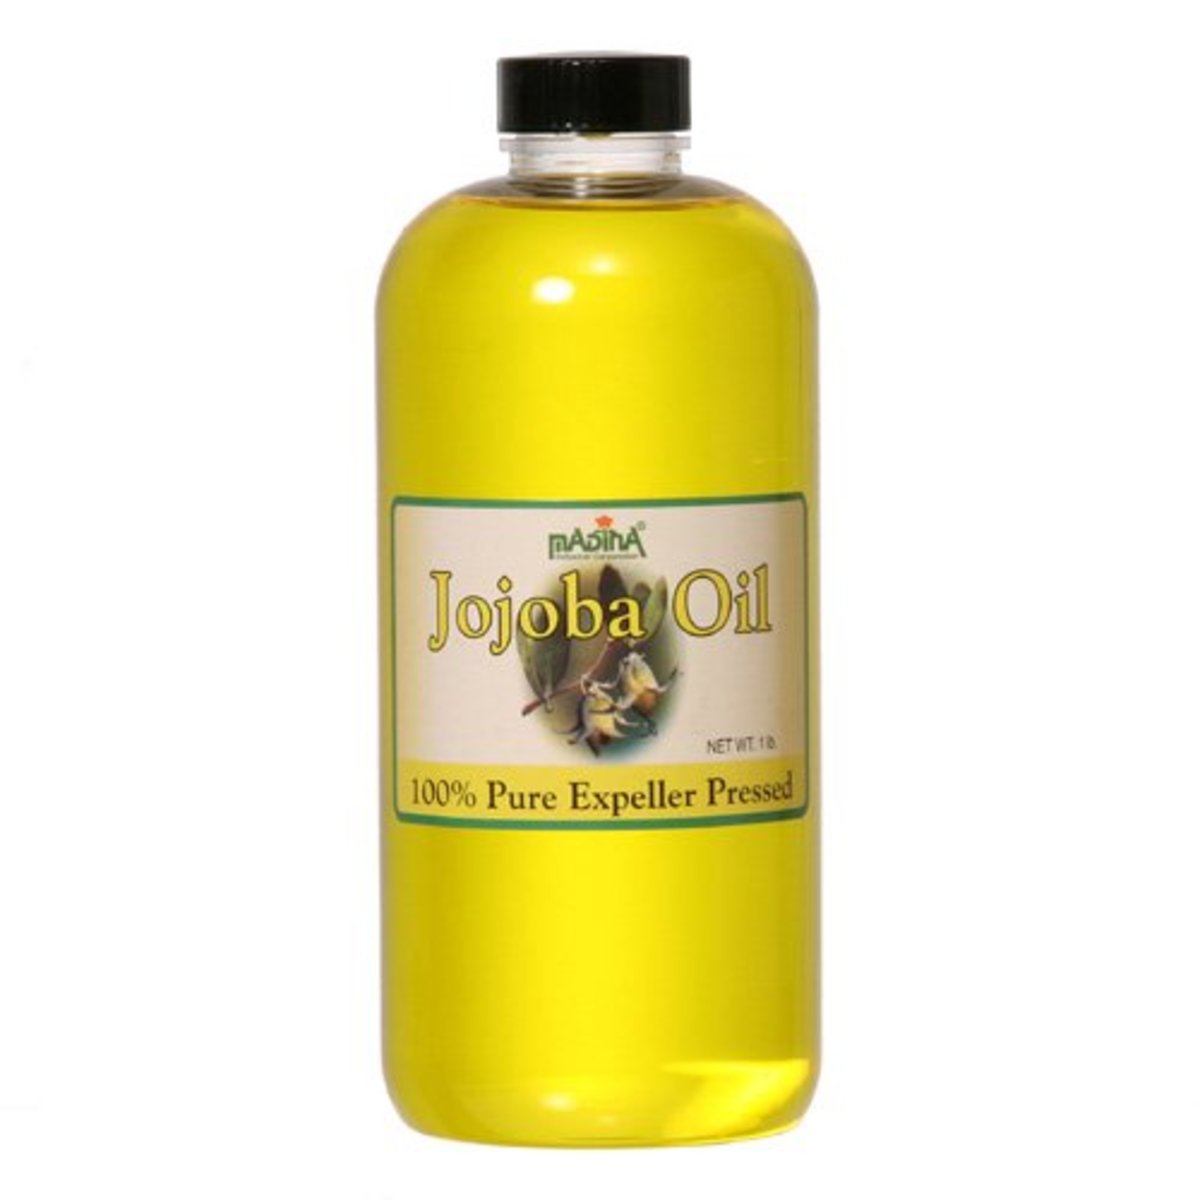 How to Treat Acne Scars Naturally with Jojoba Oil